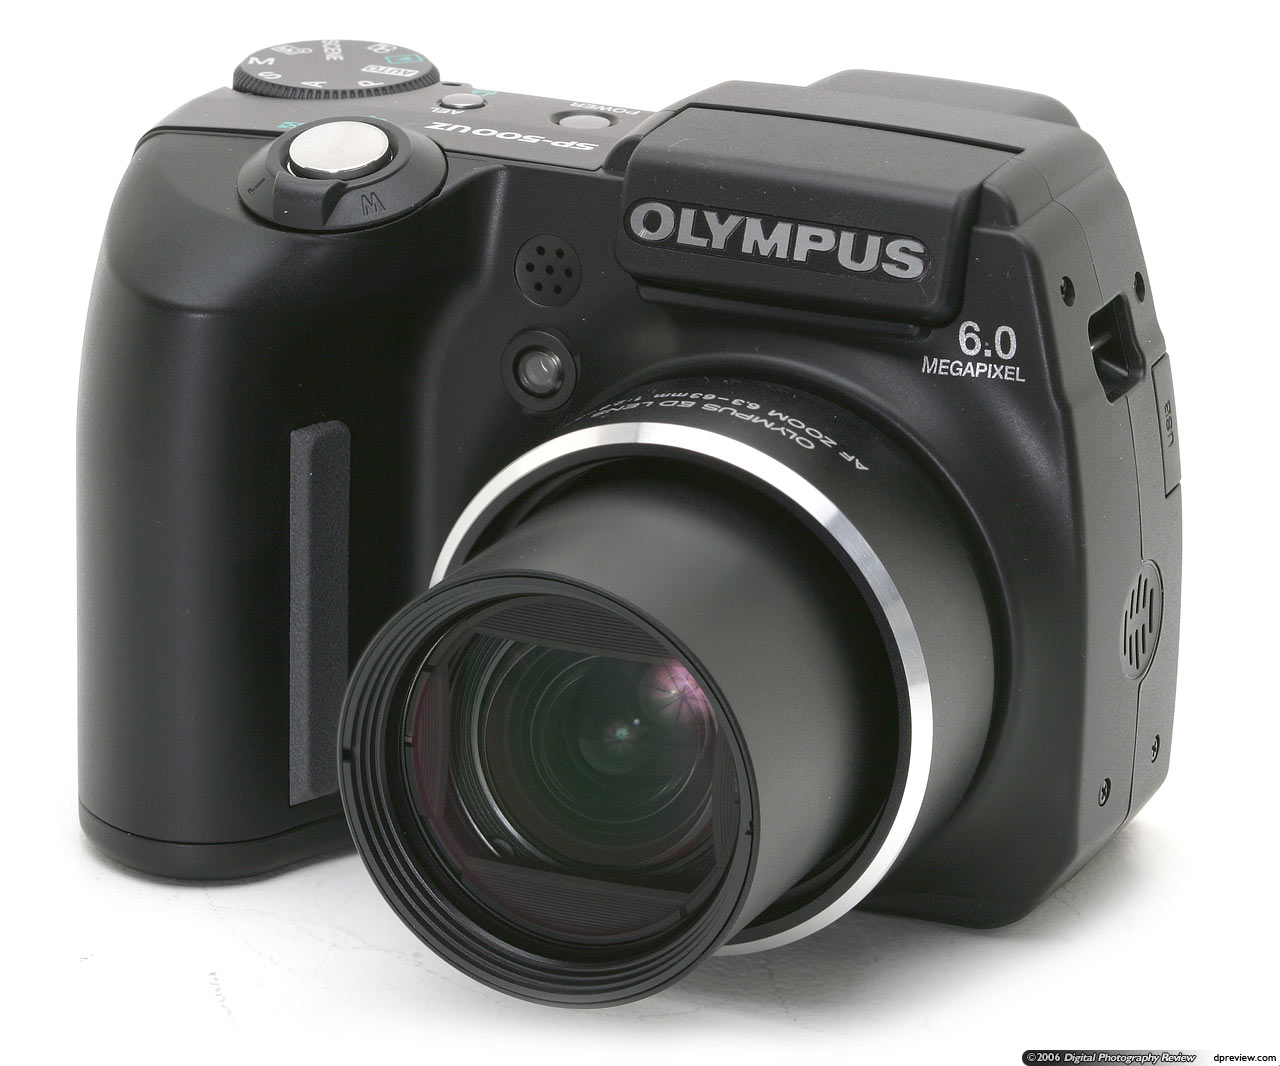 OLYMPUS SP 500UZ DRIVERS FOR WINDOWS 10